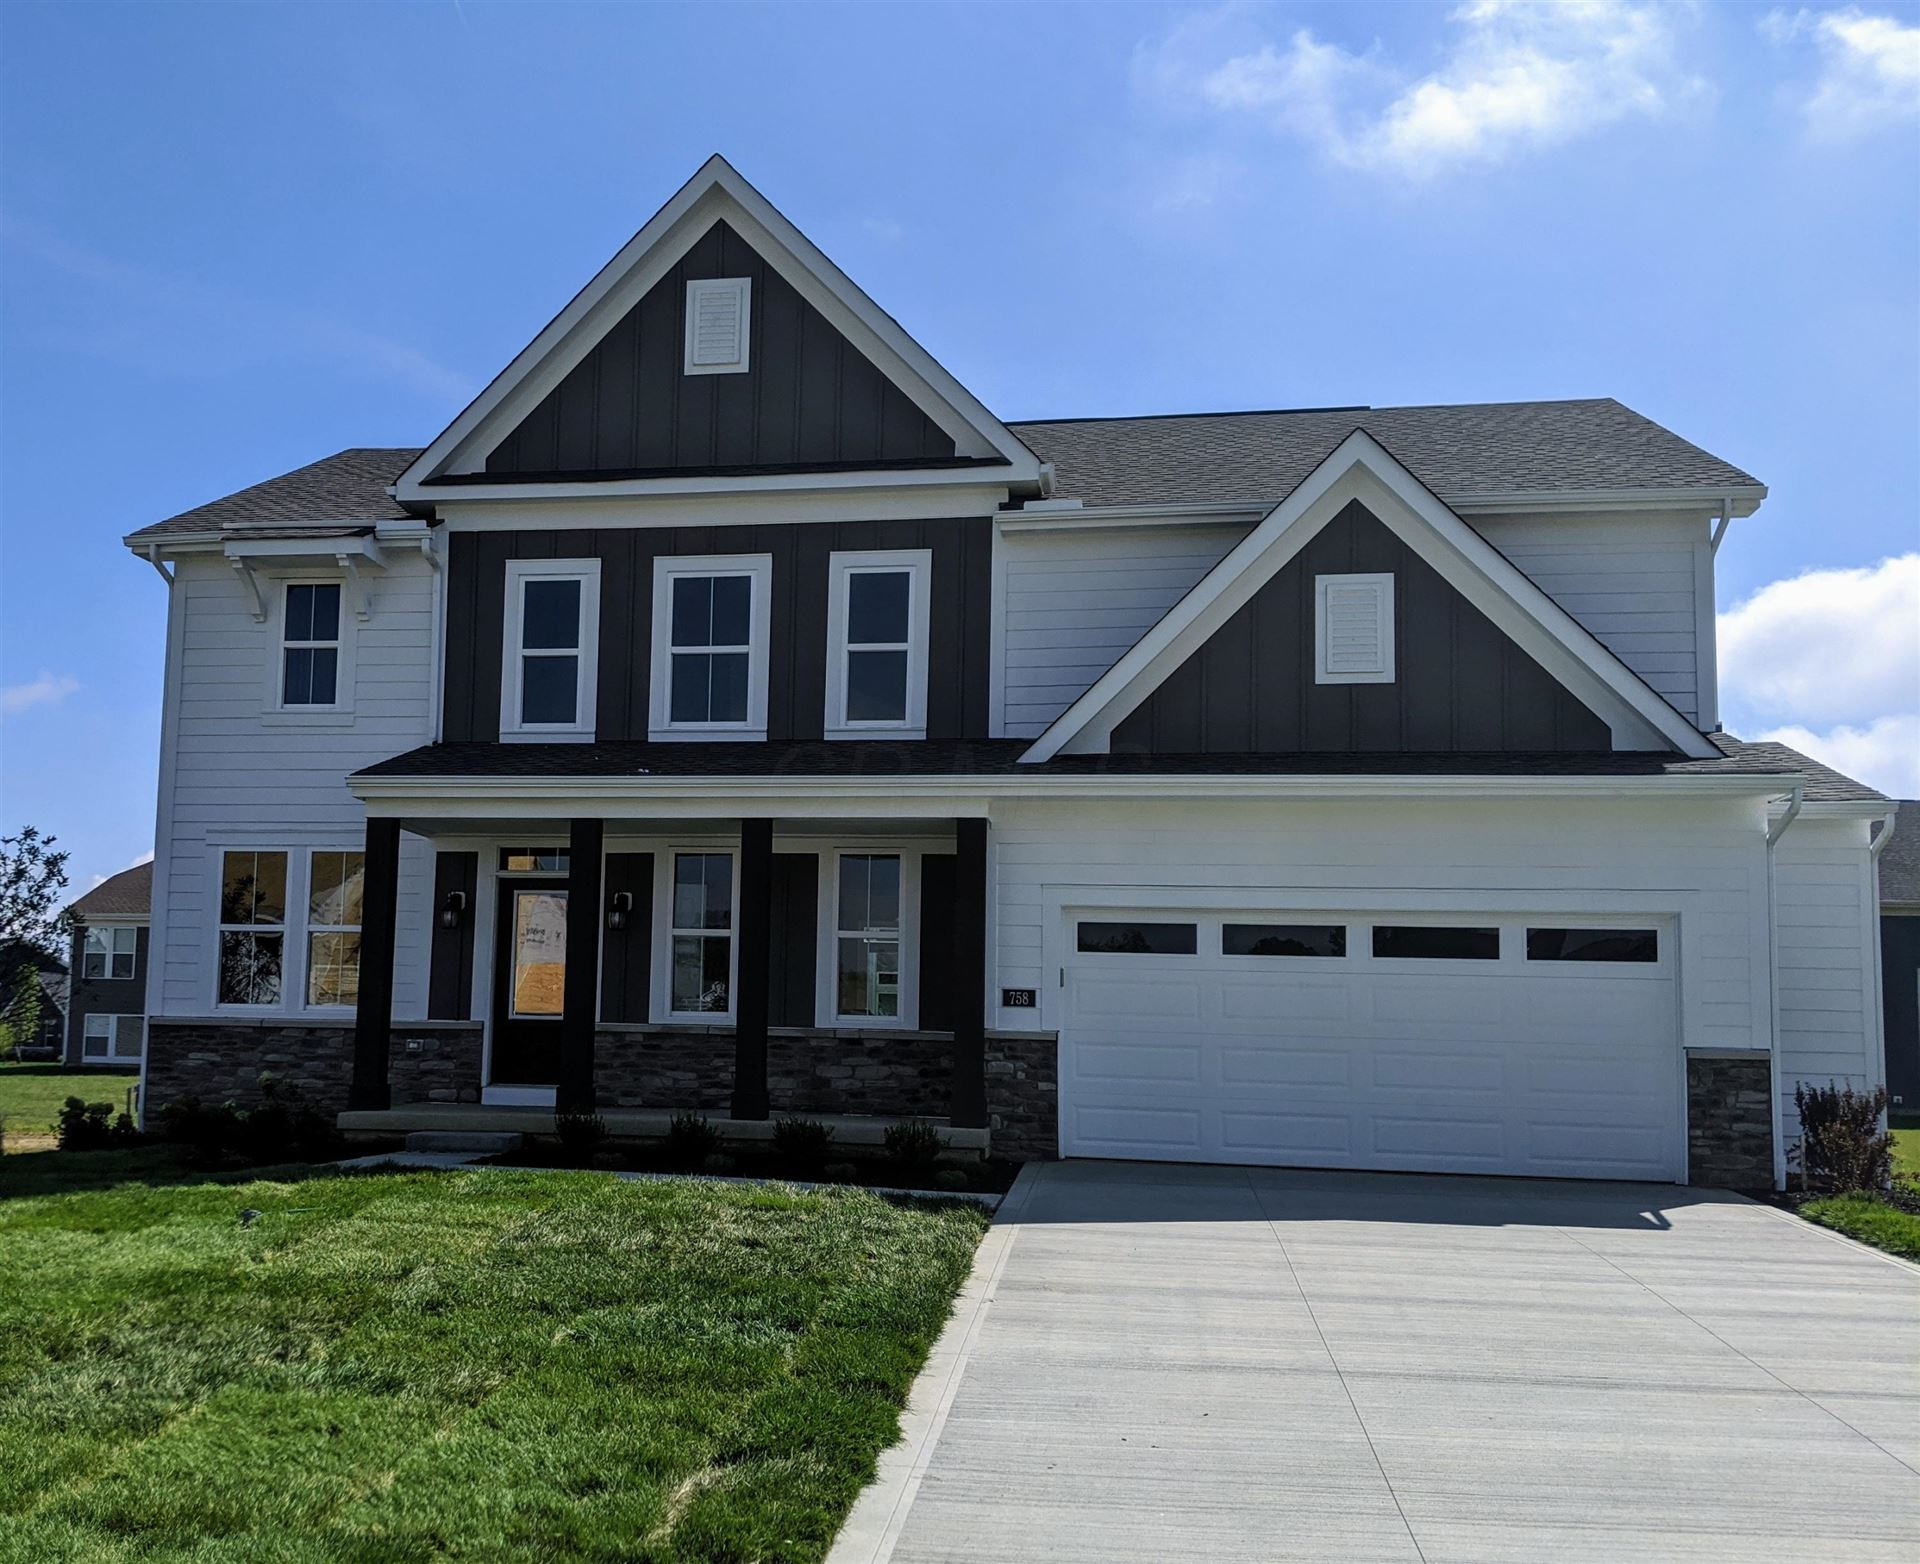 758 Wharncliff Loop, Pickerington, OH 43147 - #: 220017901